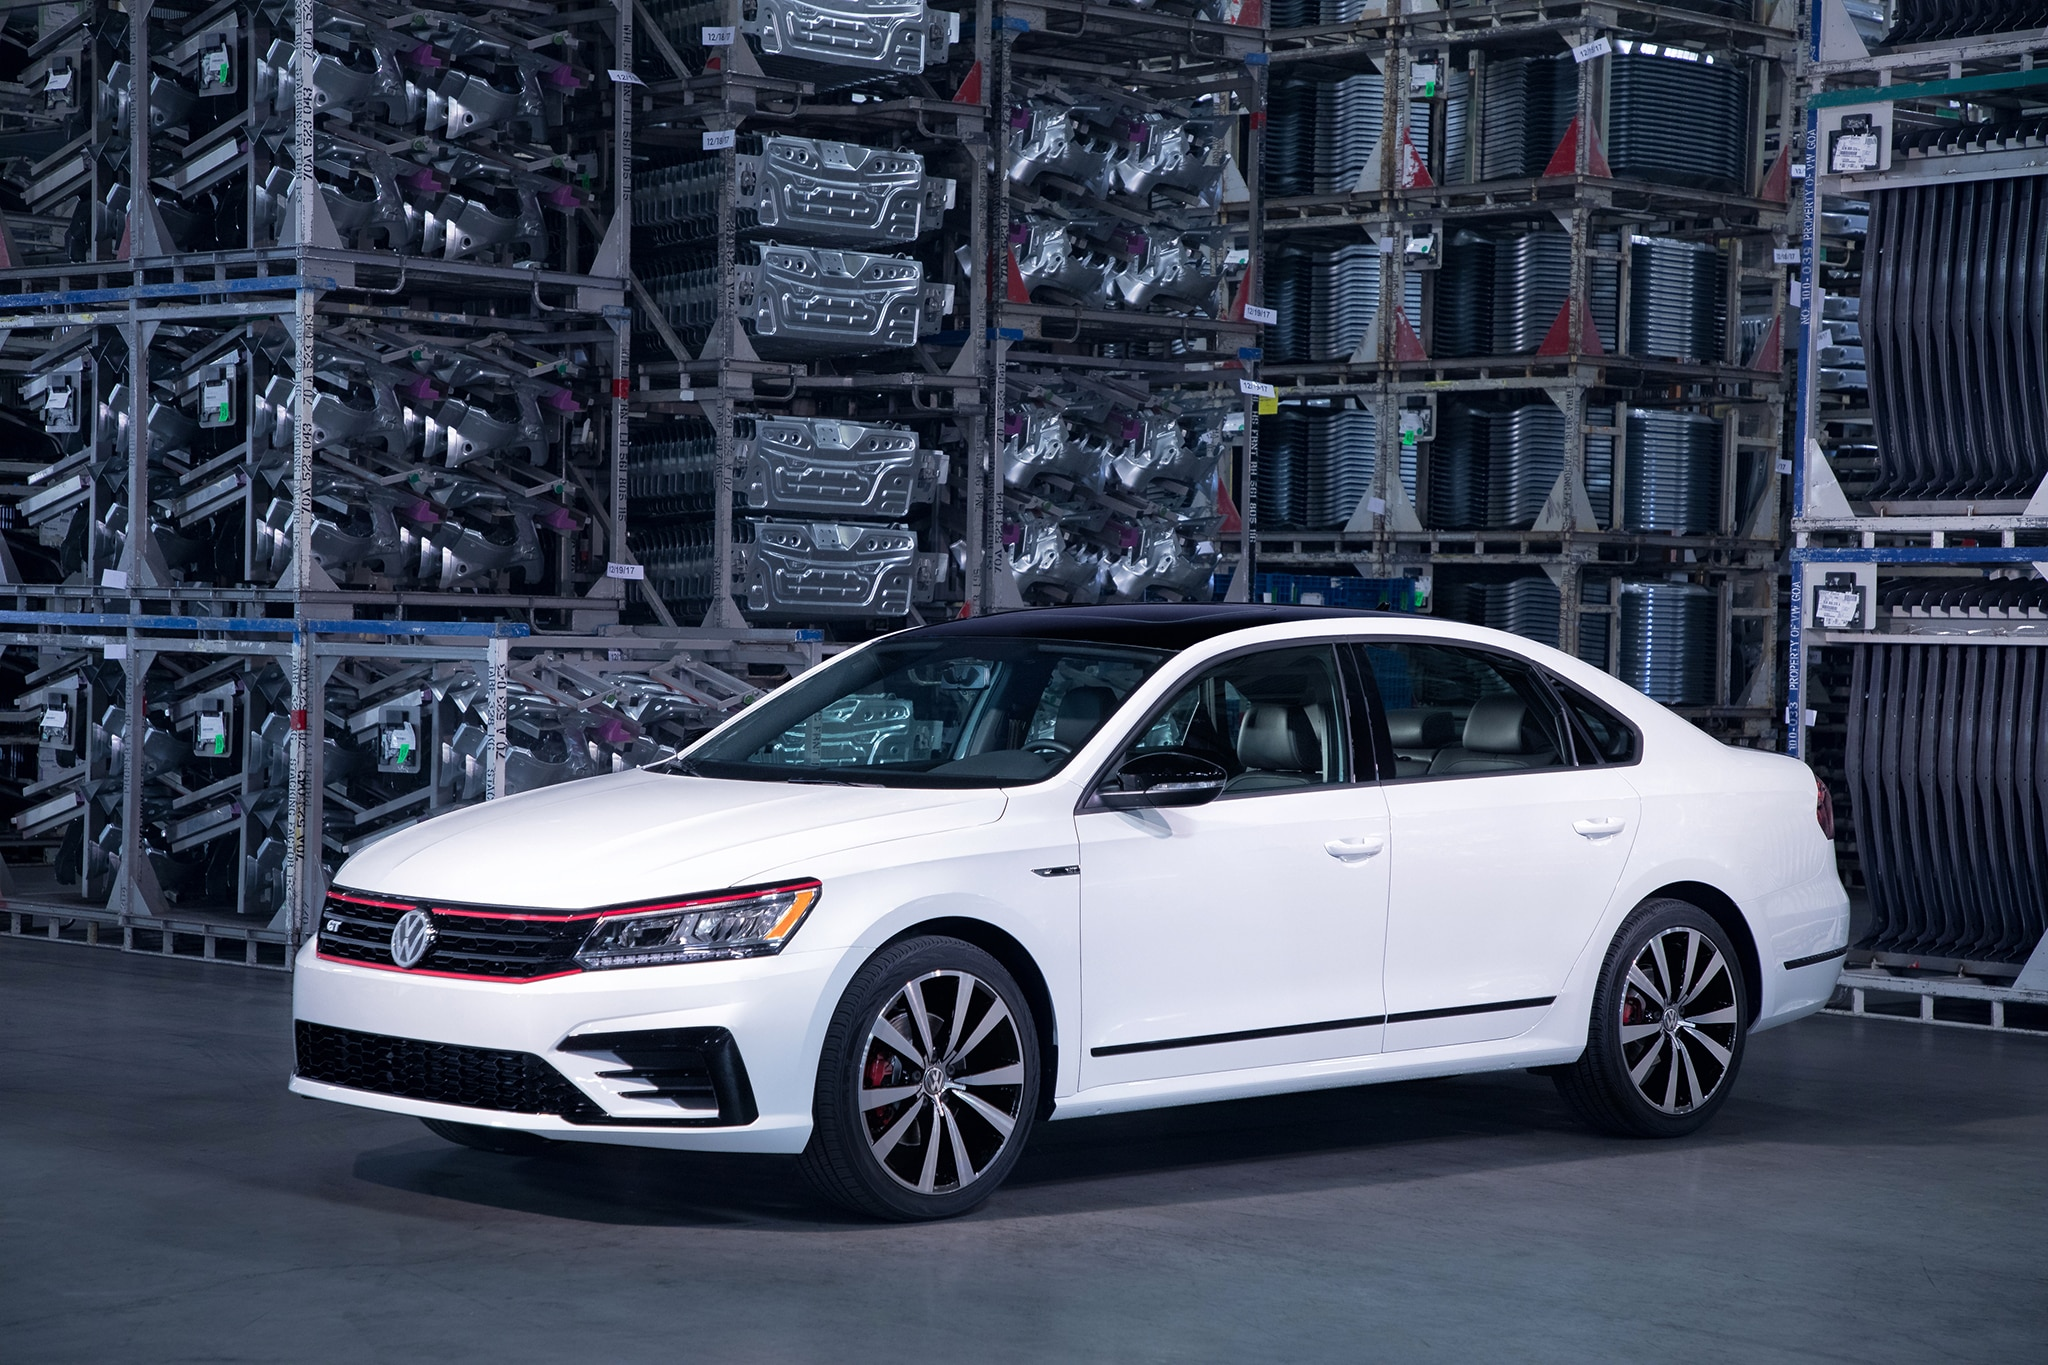 VW Jetta brings new style, tech and lower price